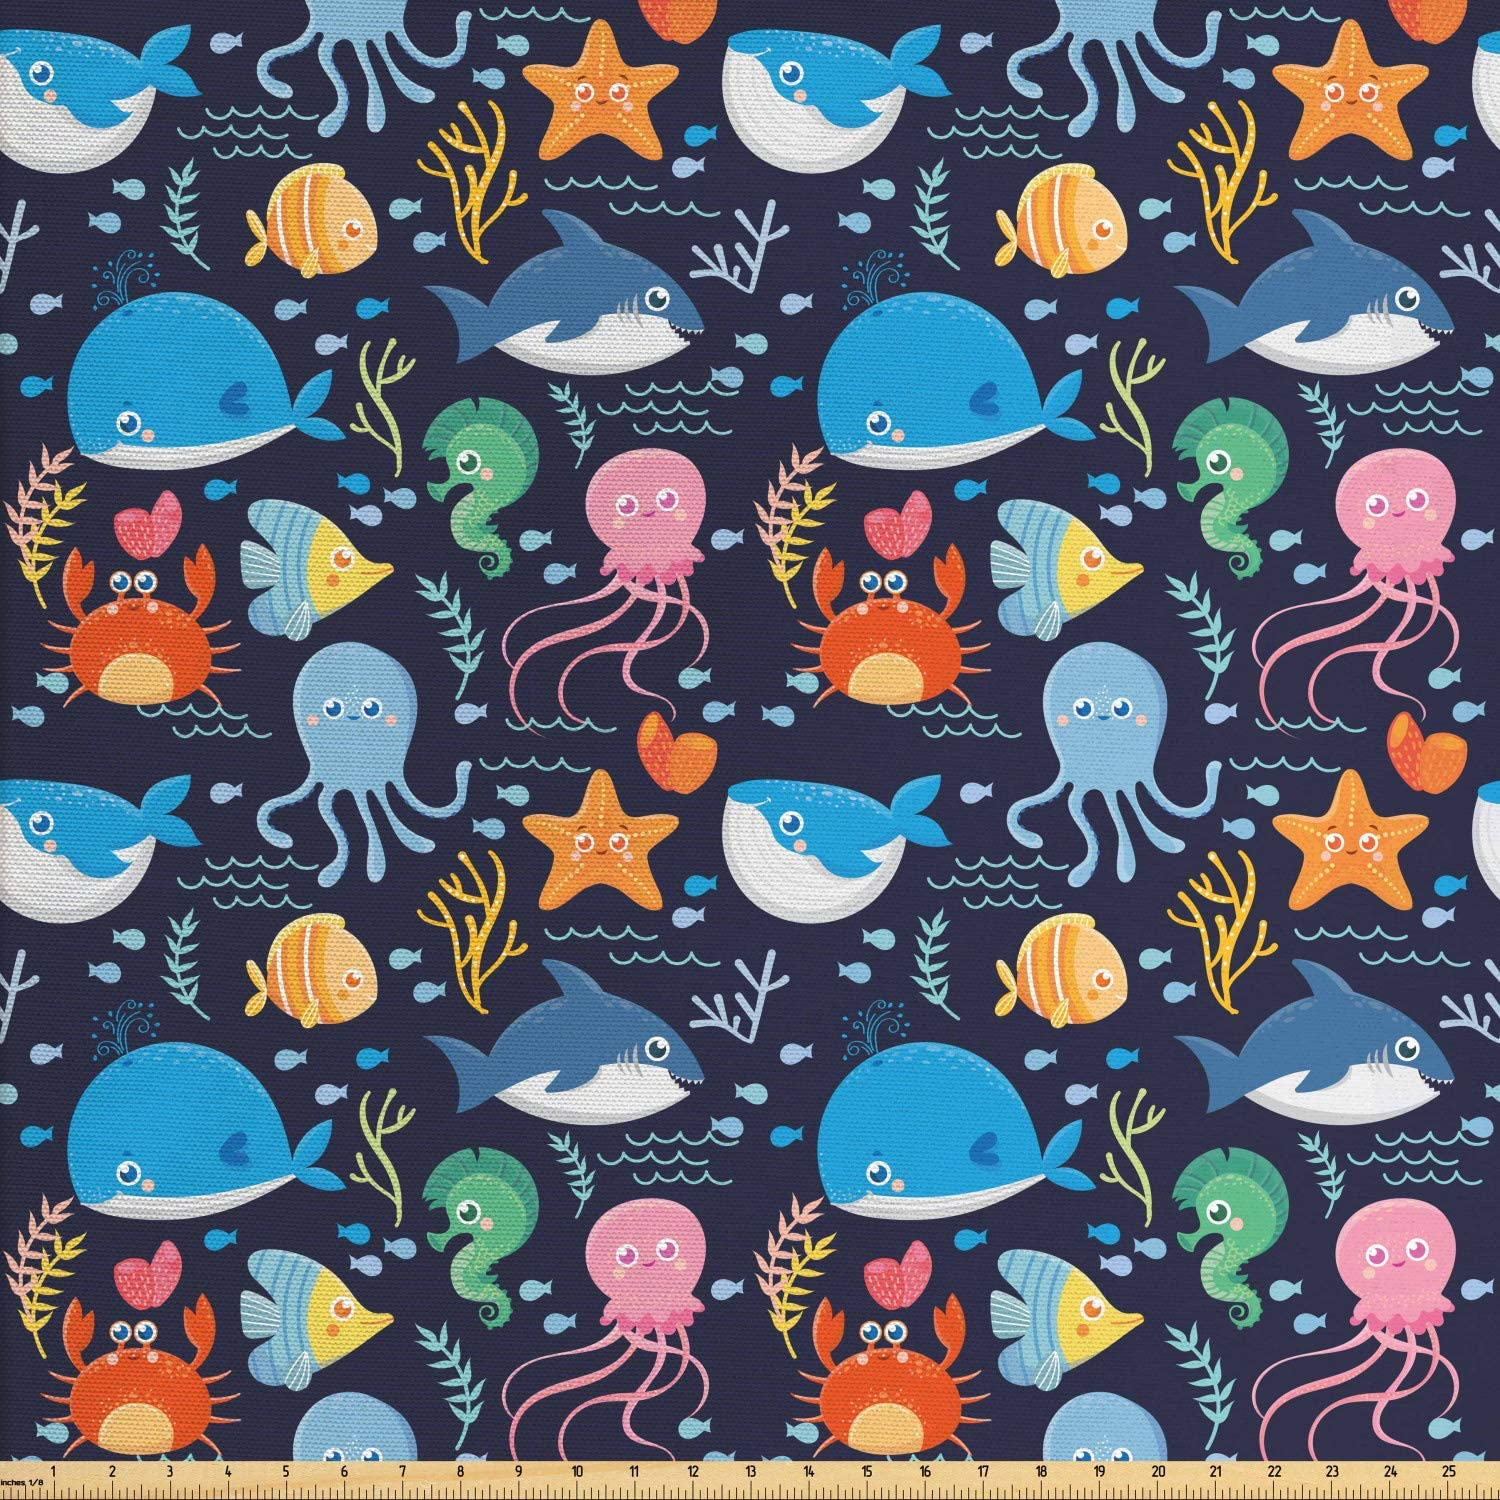 Lunarable Under The Sea Fabric by The Yard, Whale Shark and Crab on Dark Blue Shaded Background Funny Sea Animals Cartoon, Decorative Fabric for Upholstery and Home Accents, 1 Yard, Dark Blue